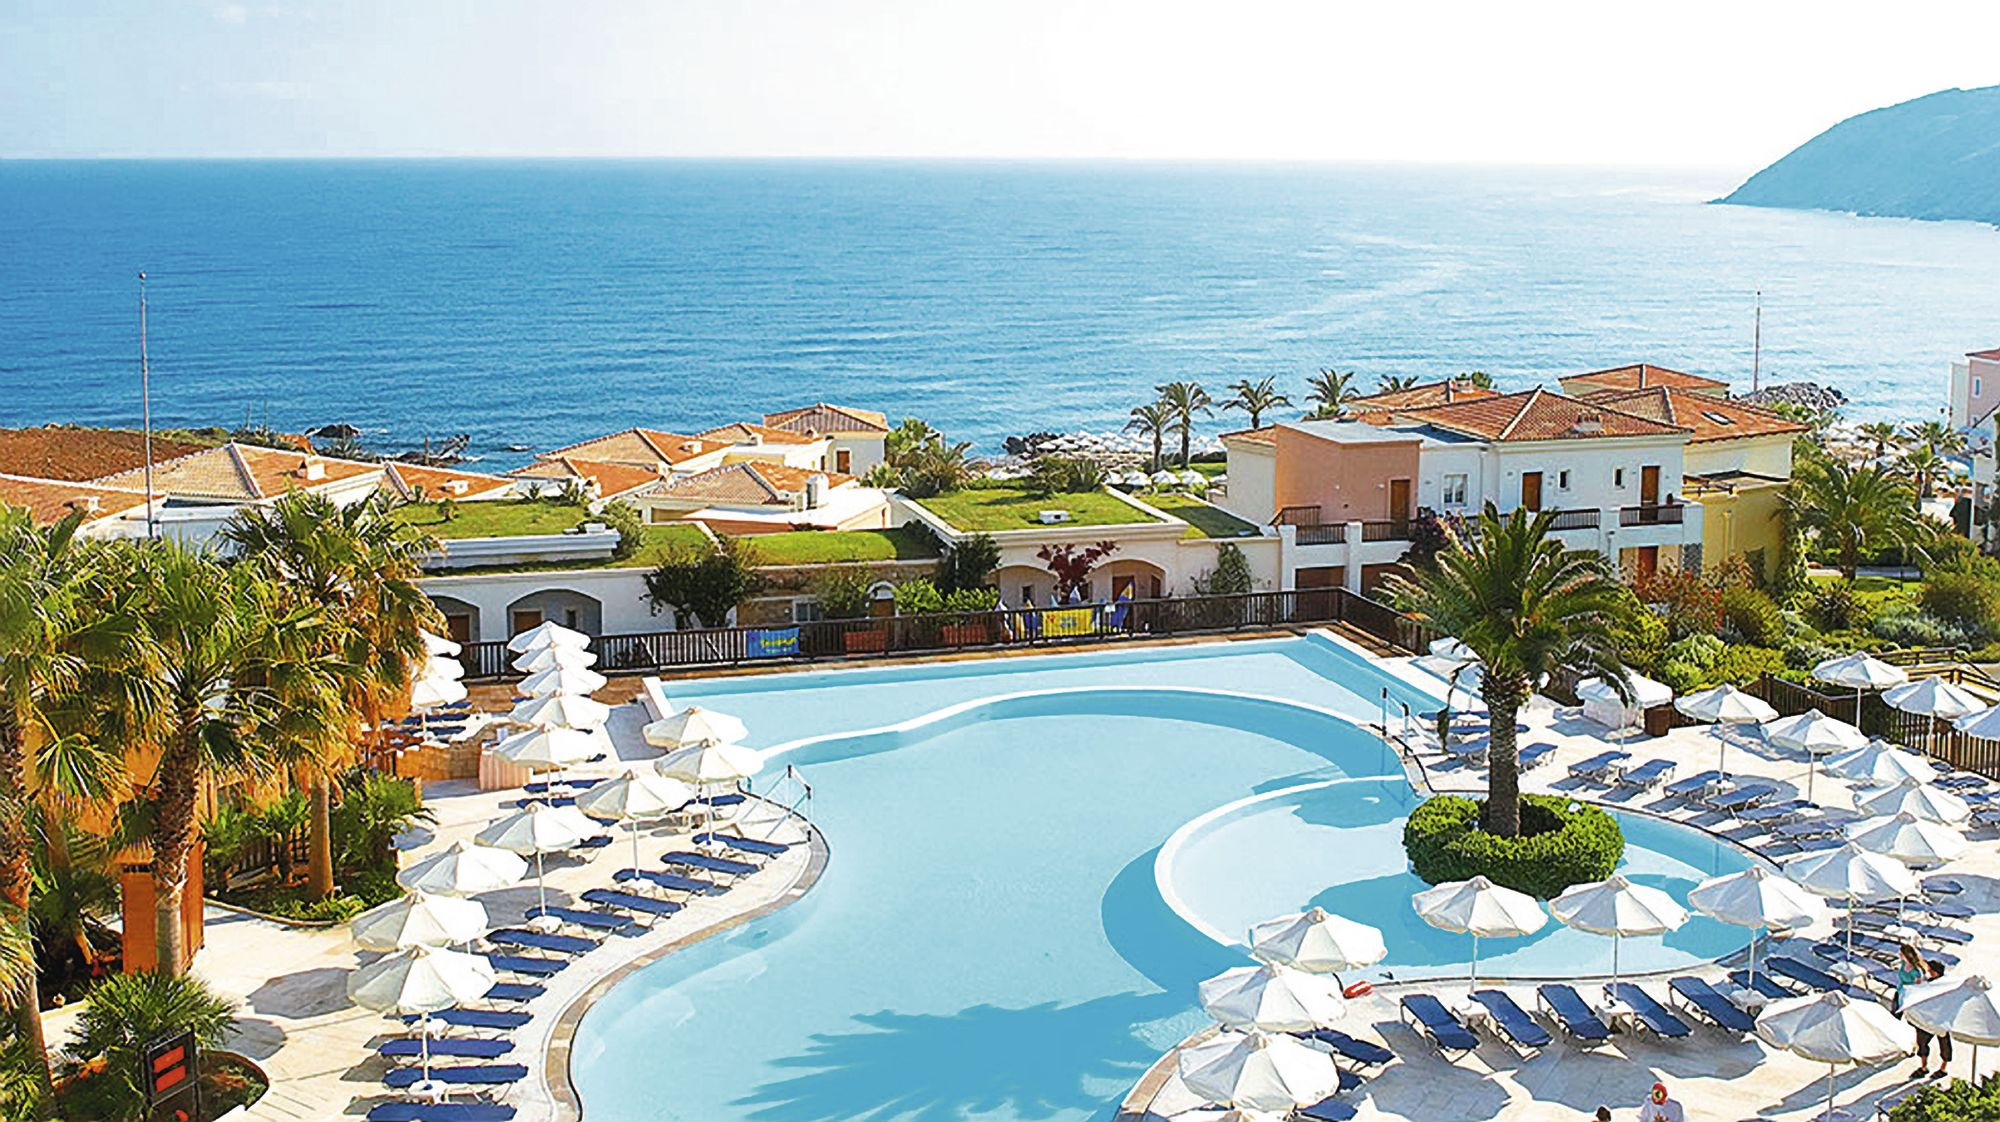 Holiday to Grecotel Club Marine Palace in RETHYMNON (GREECE) for 4 nights (AI) departing from birmingham on 03 May